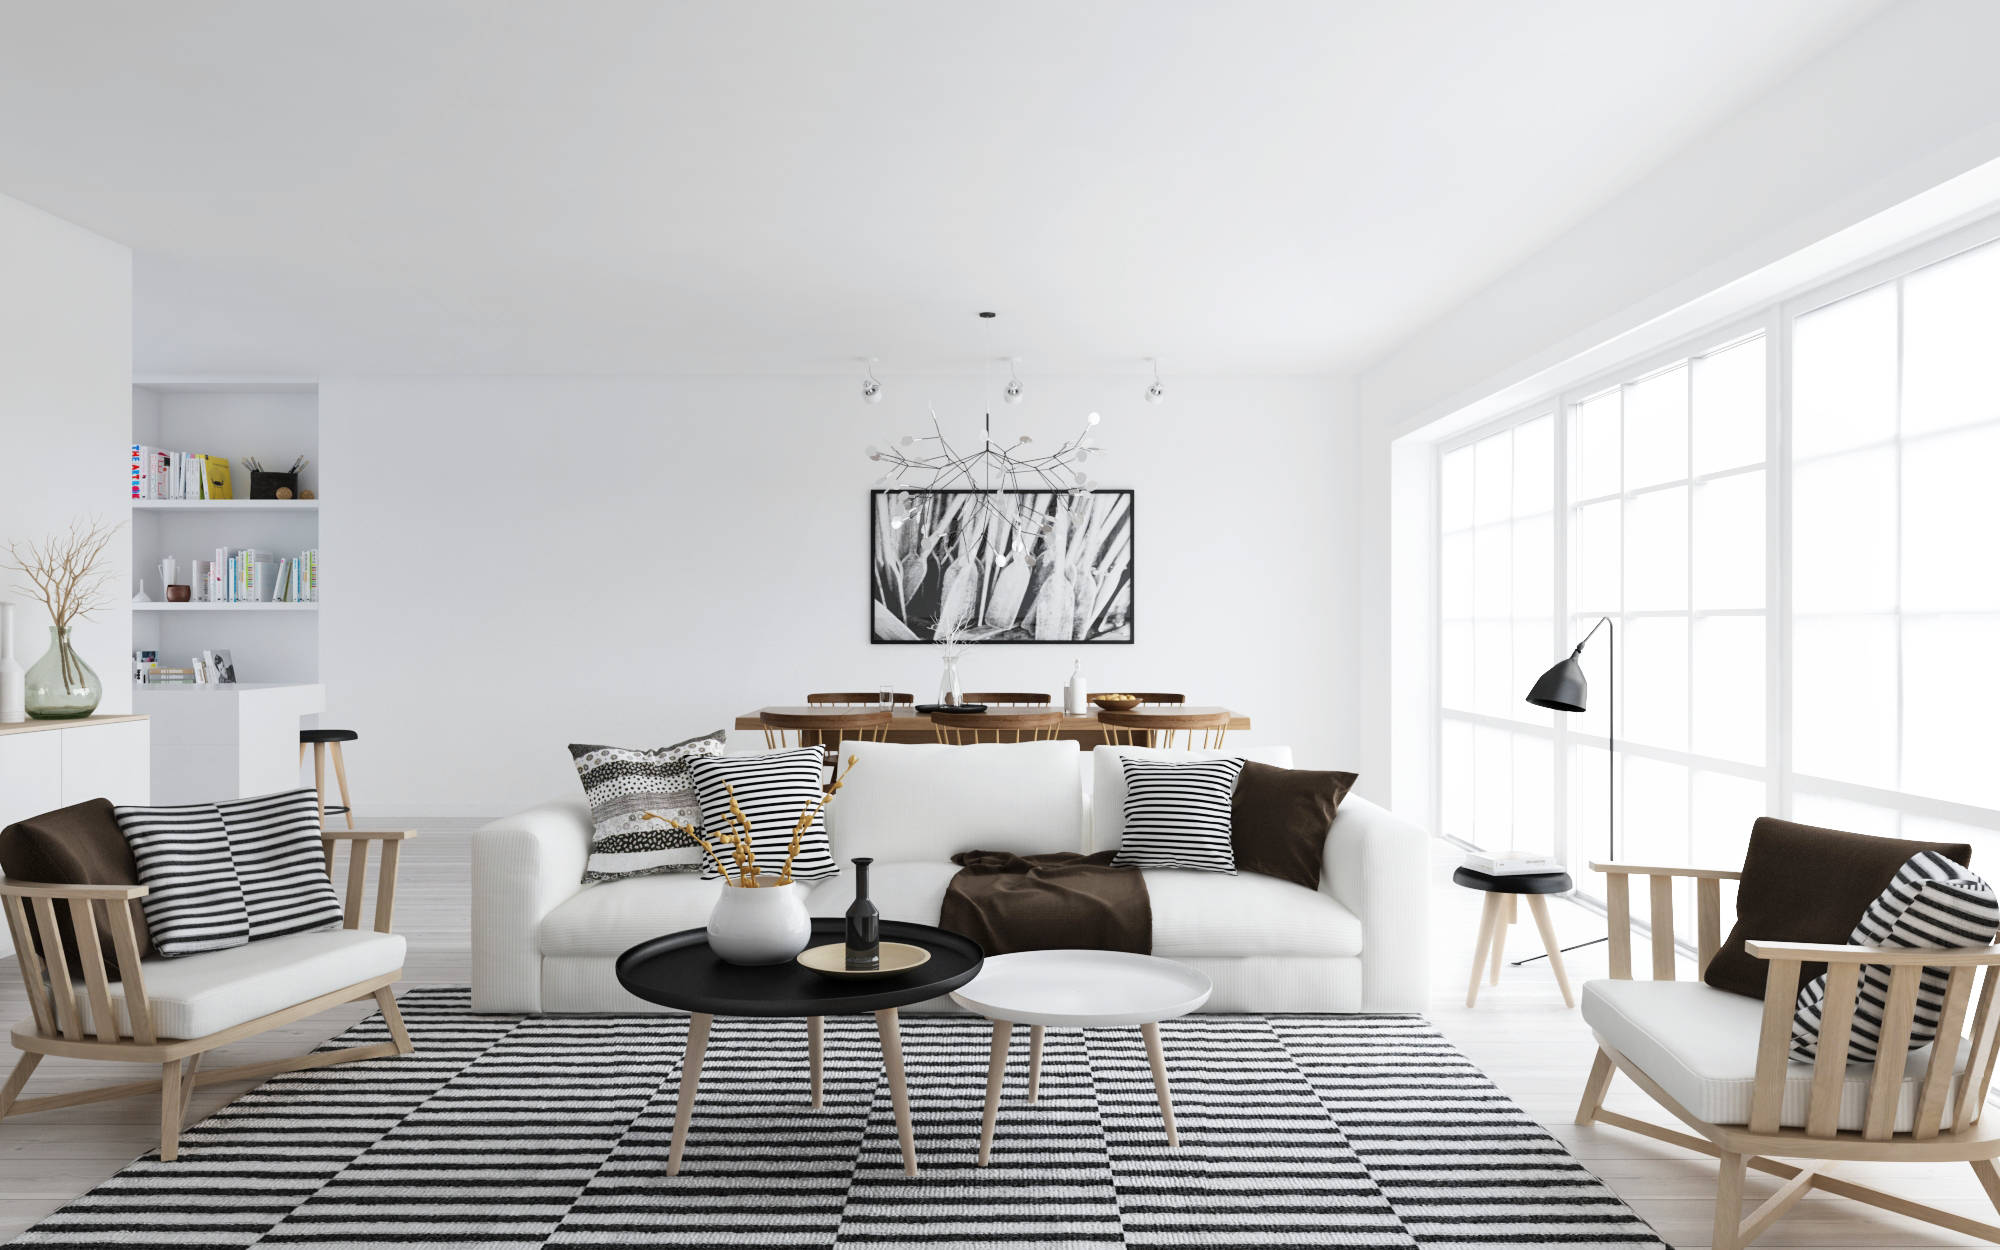 Atdesign nordic style living in monochrome interior for Monochrome design ideas